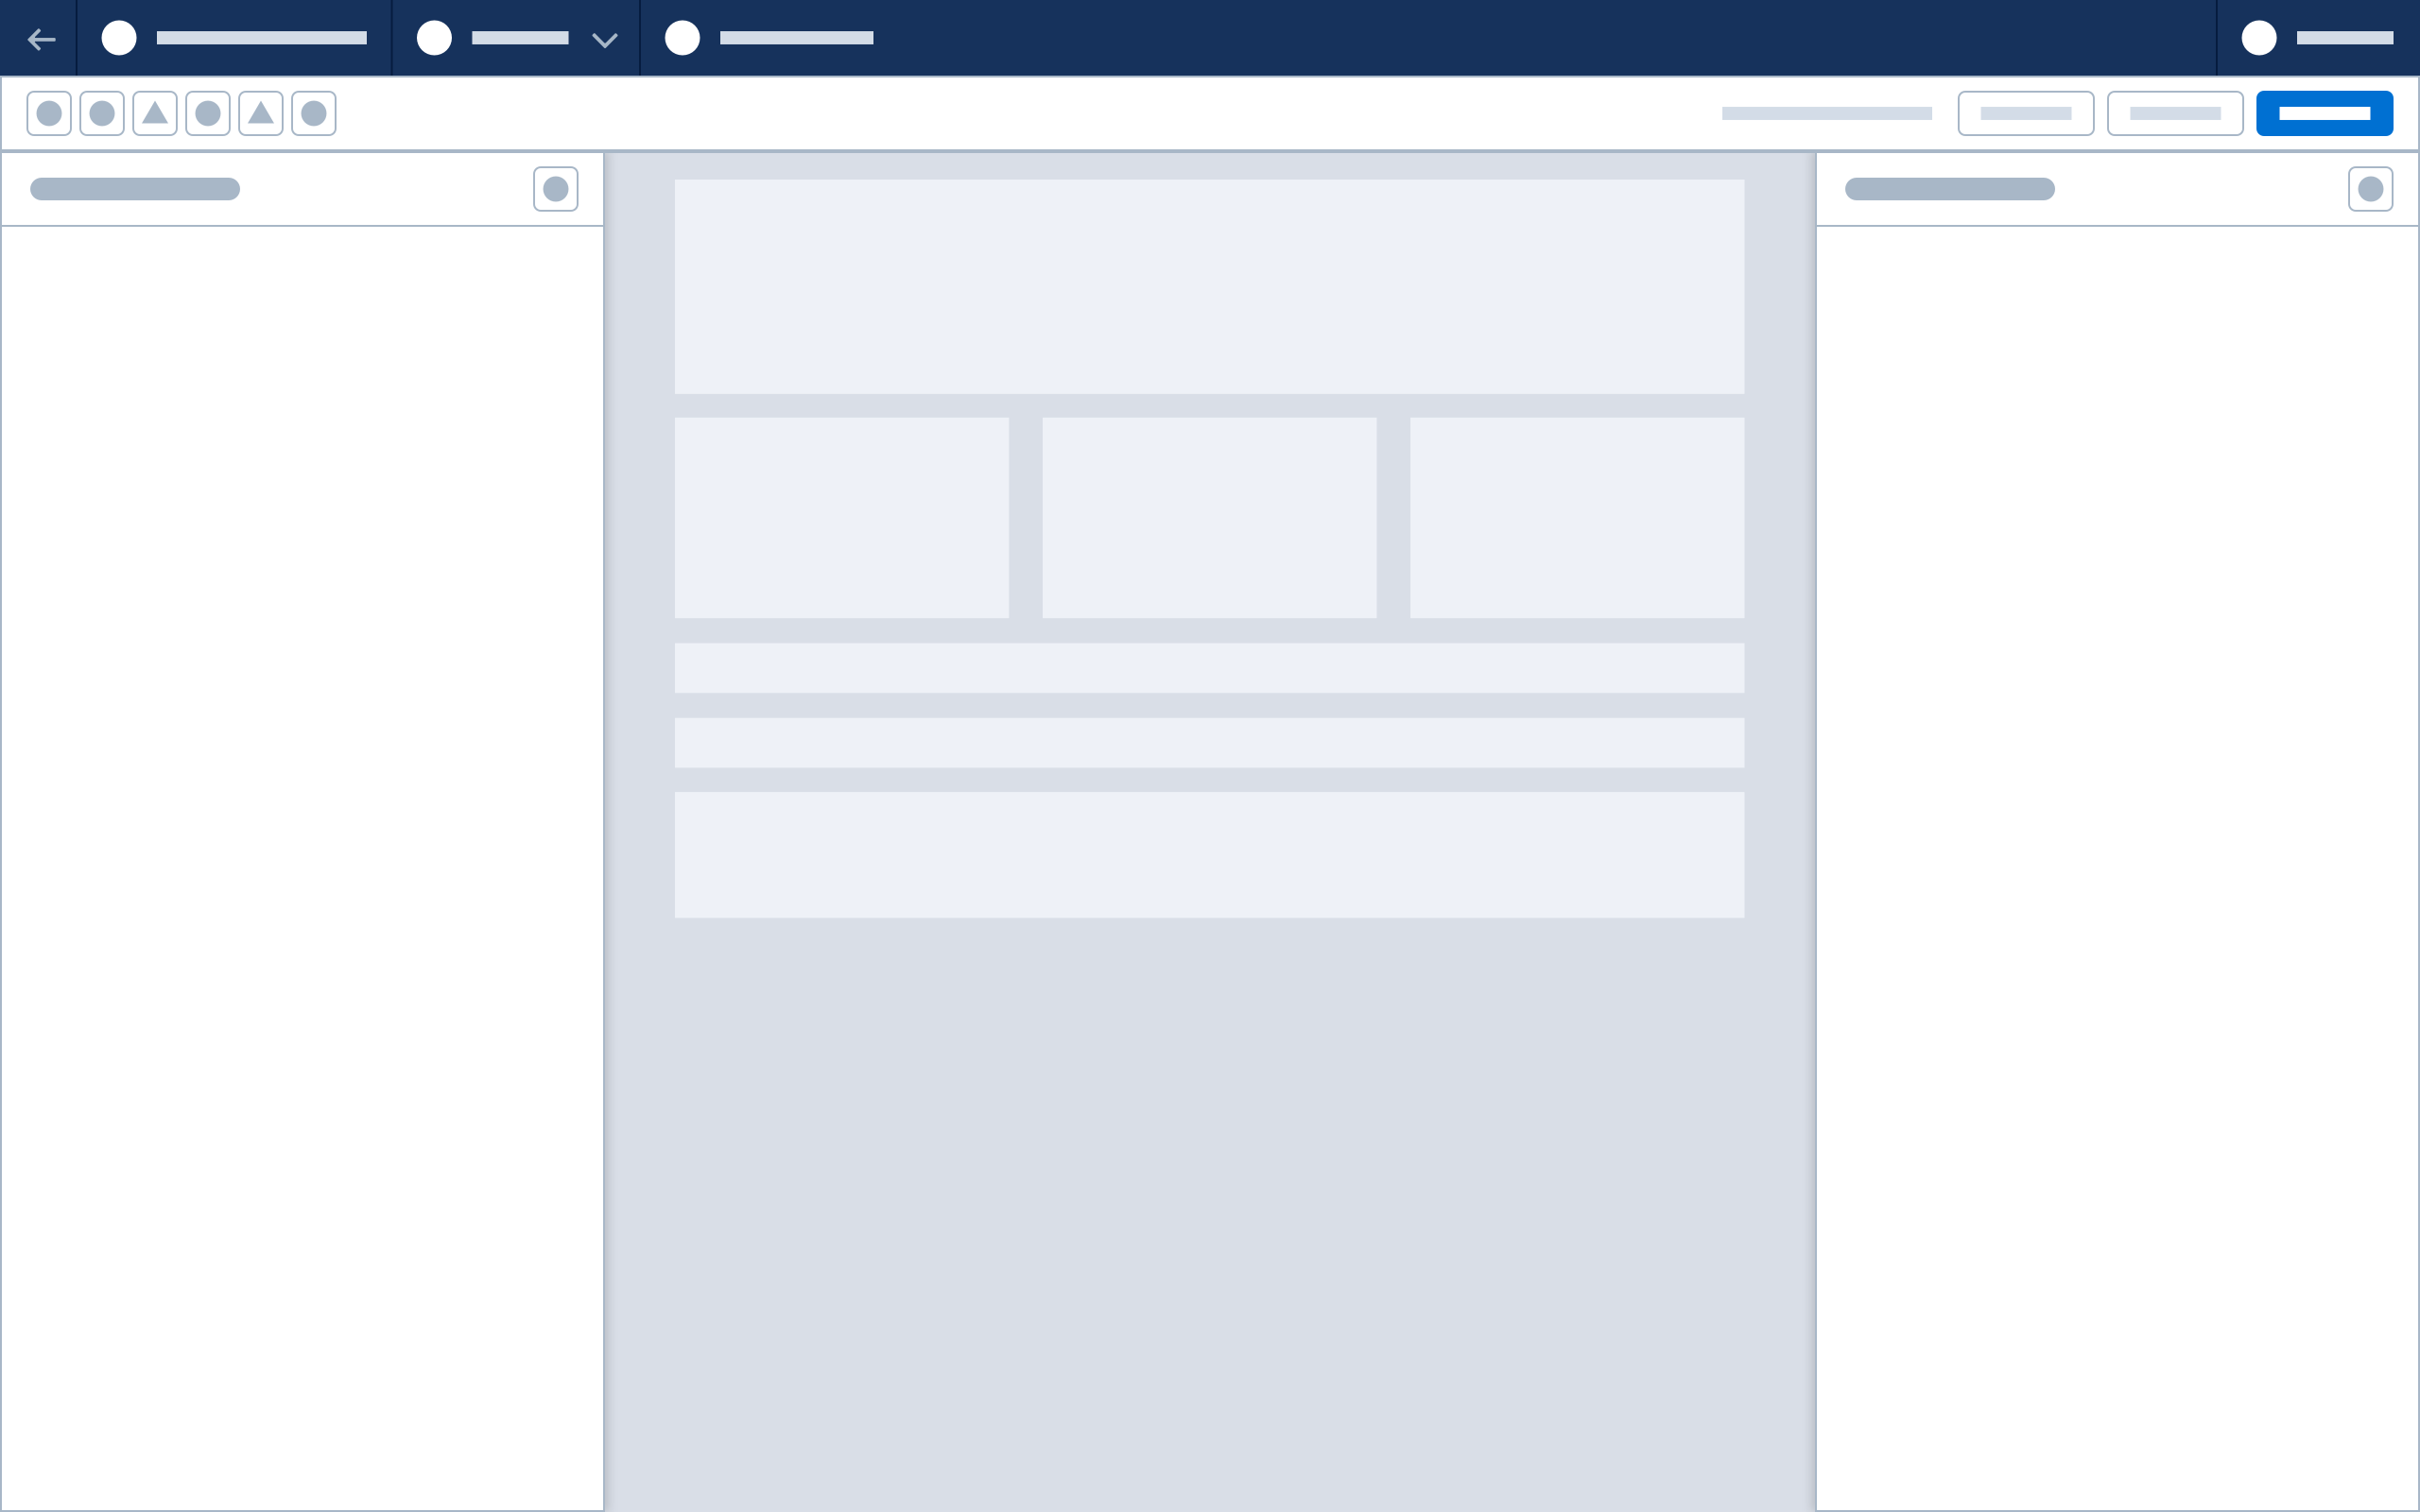 A wireframe showing a flexible panel configuration with header, canvas, rail, and floating panel